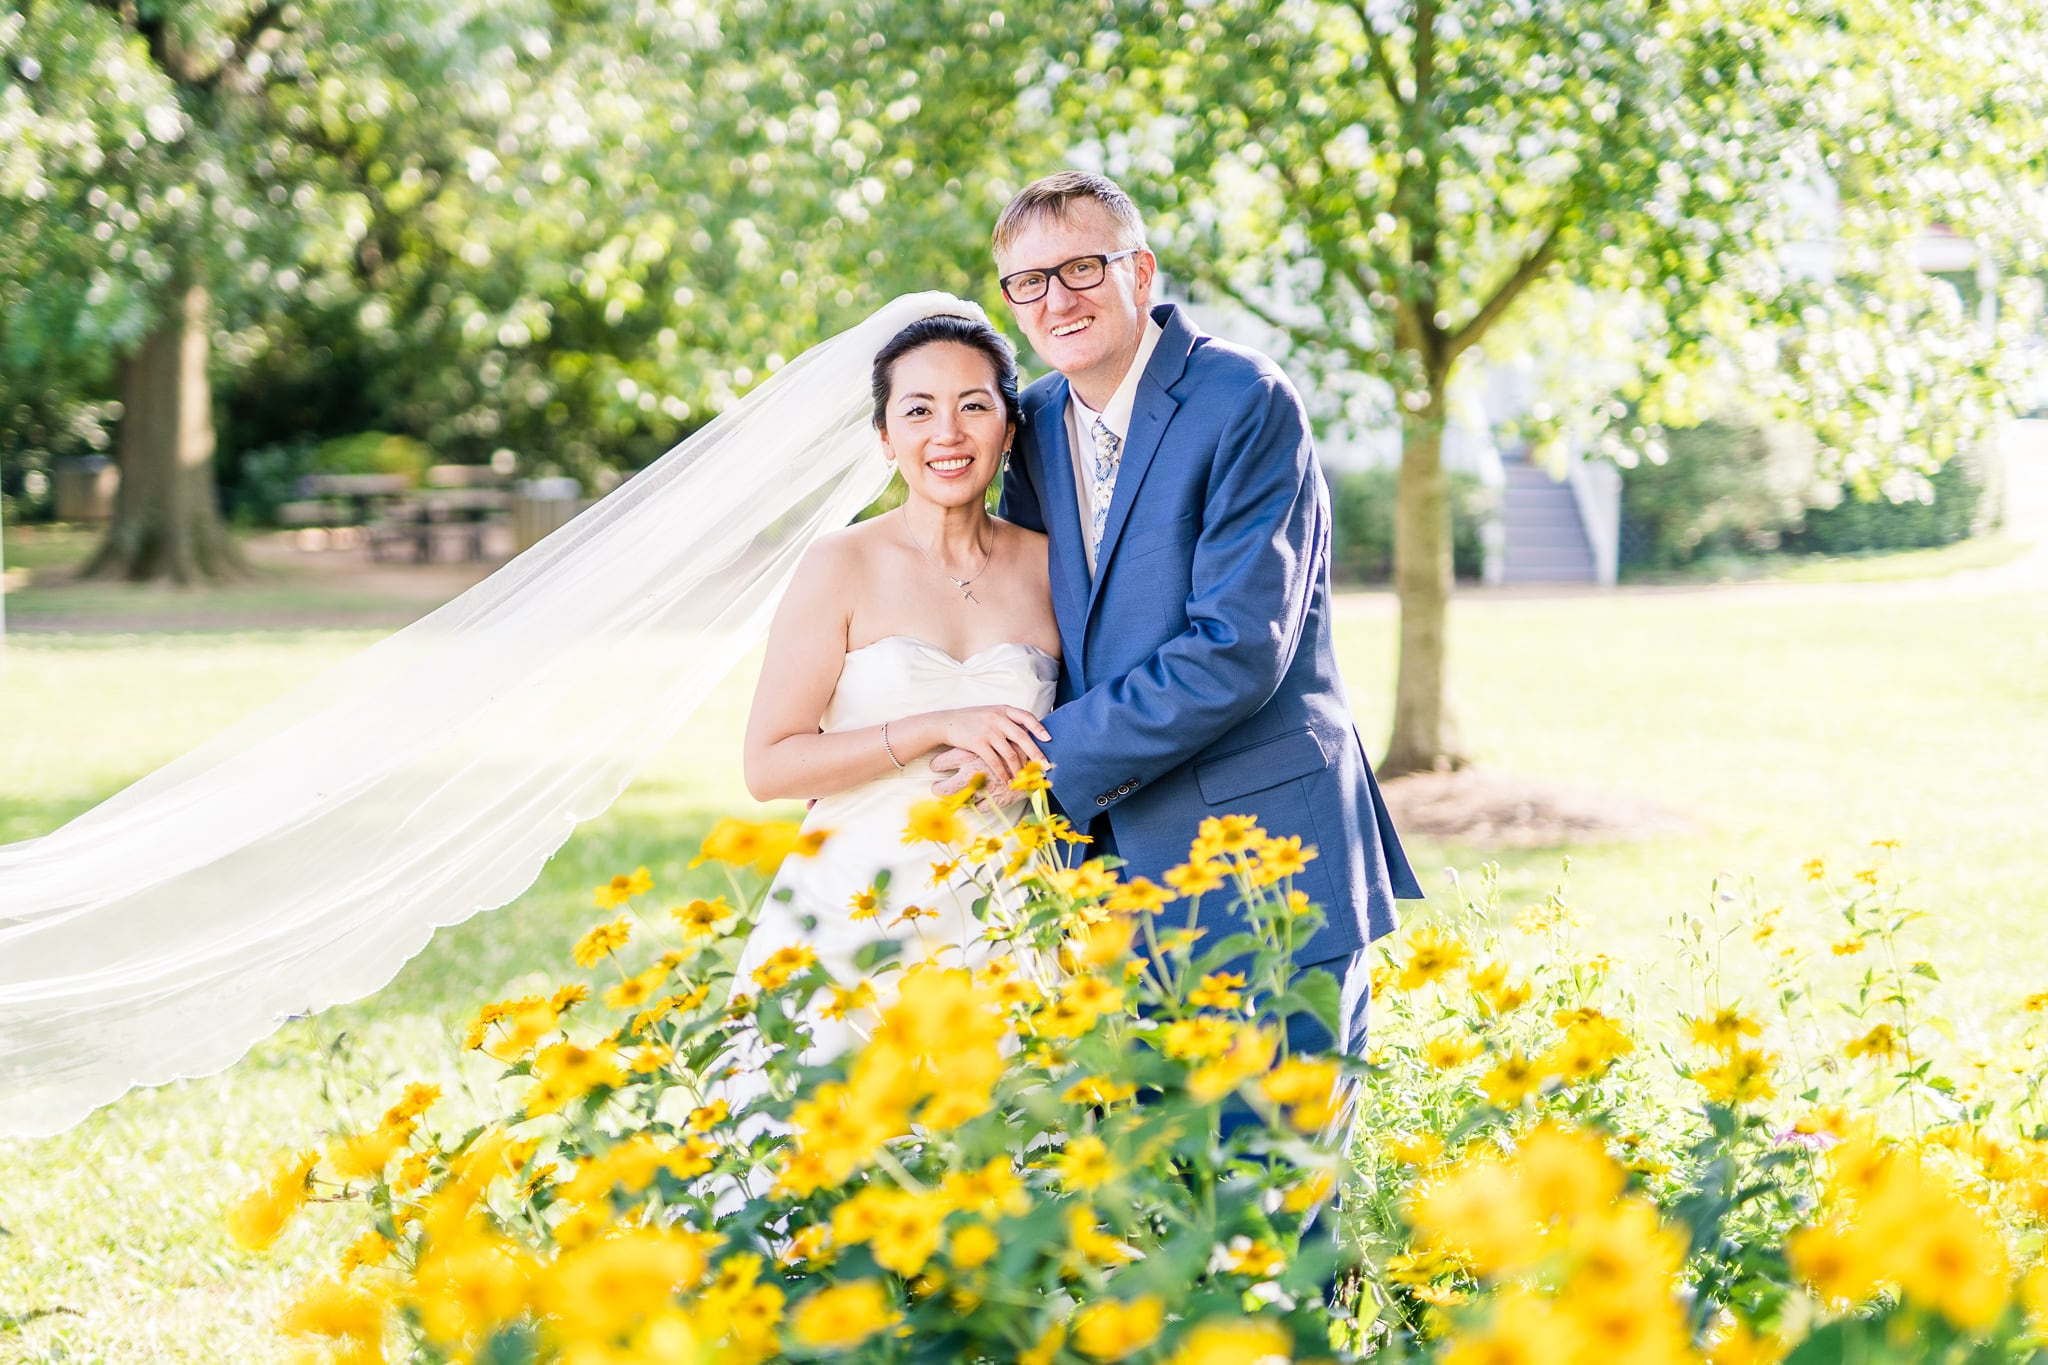 A Taiwanese bride poses with her groom behind wildflowers across from the Vienna Presbyterian Church where they were married in Vienna, Northern Virginia